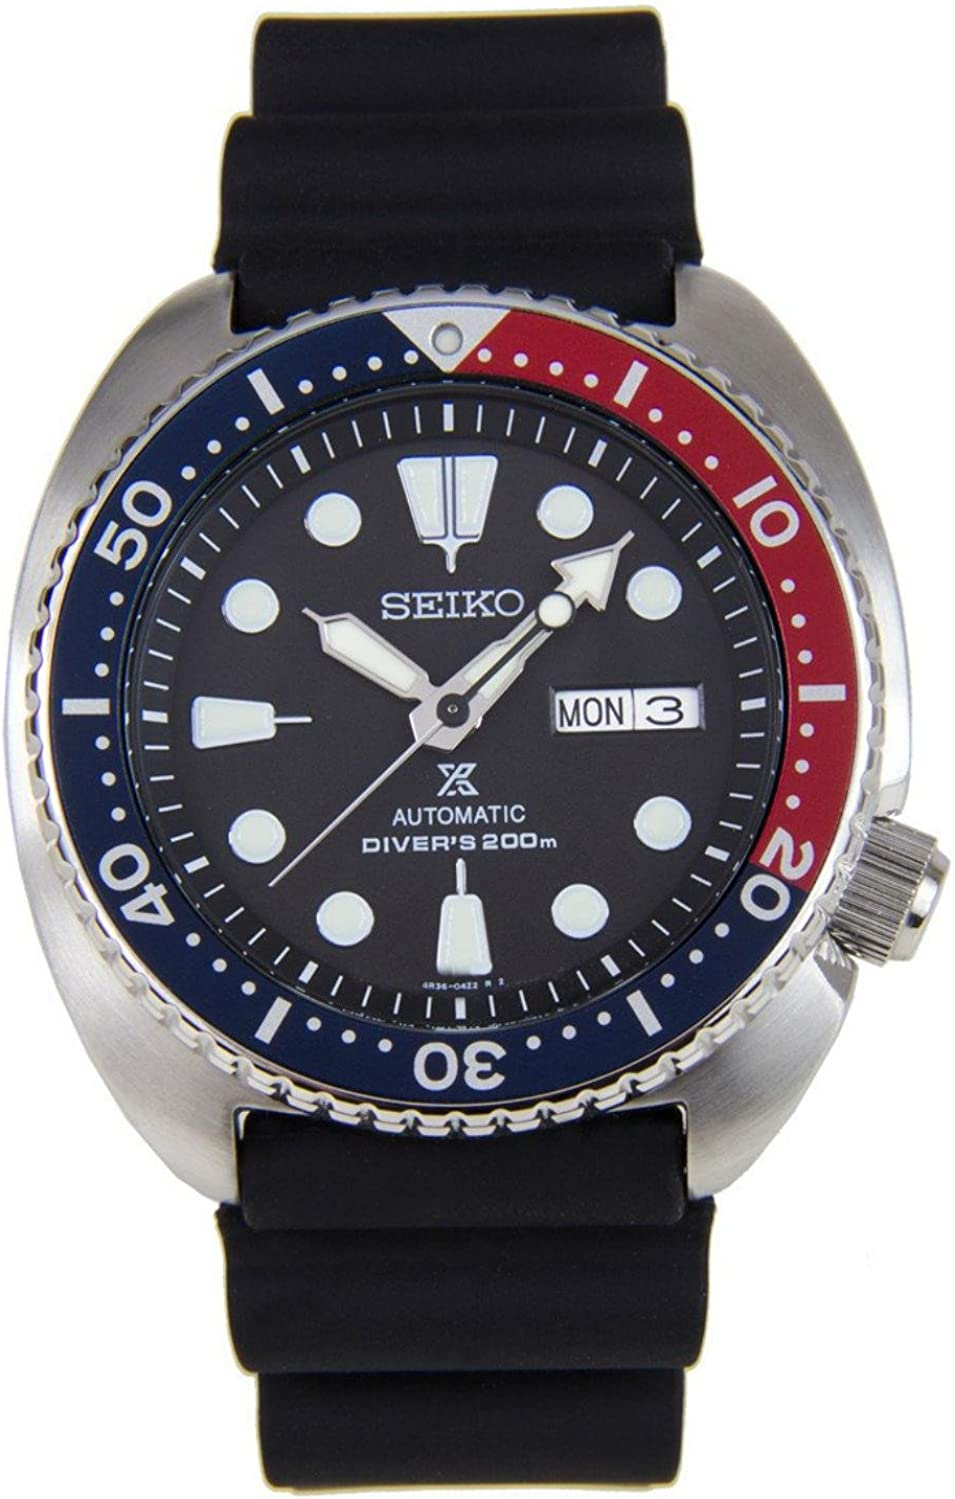 Seiko Men's Analogue Automatic Watch with Plastic Strap – SRP779K1